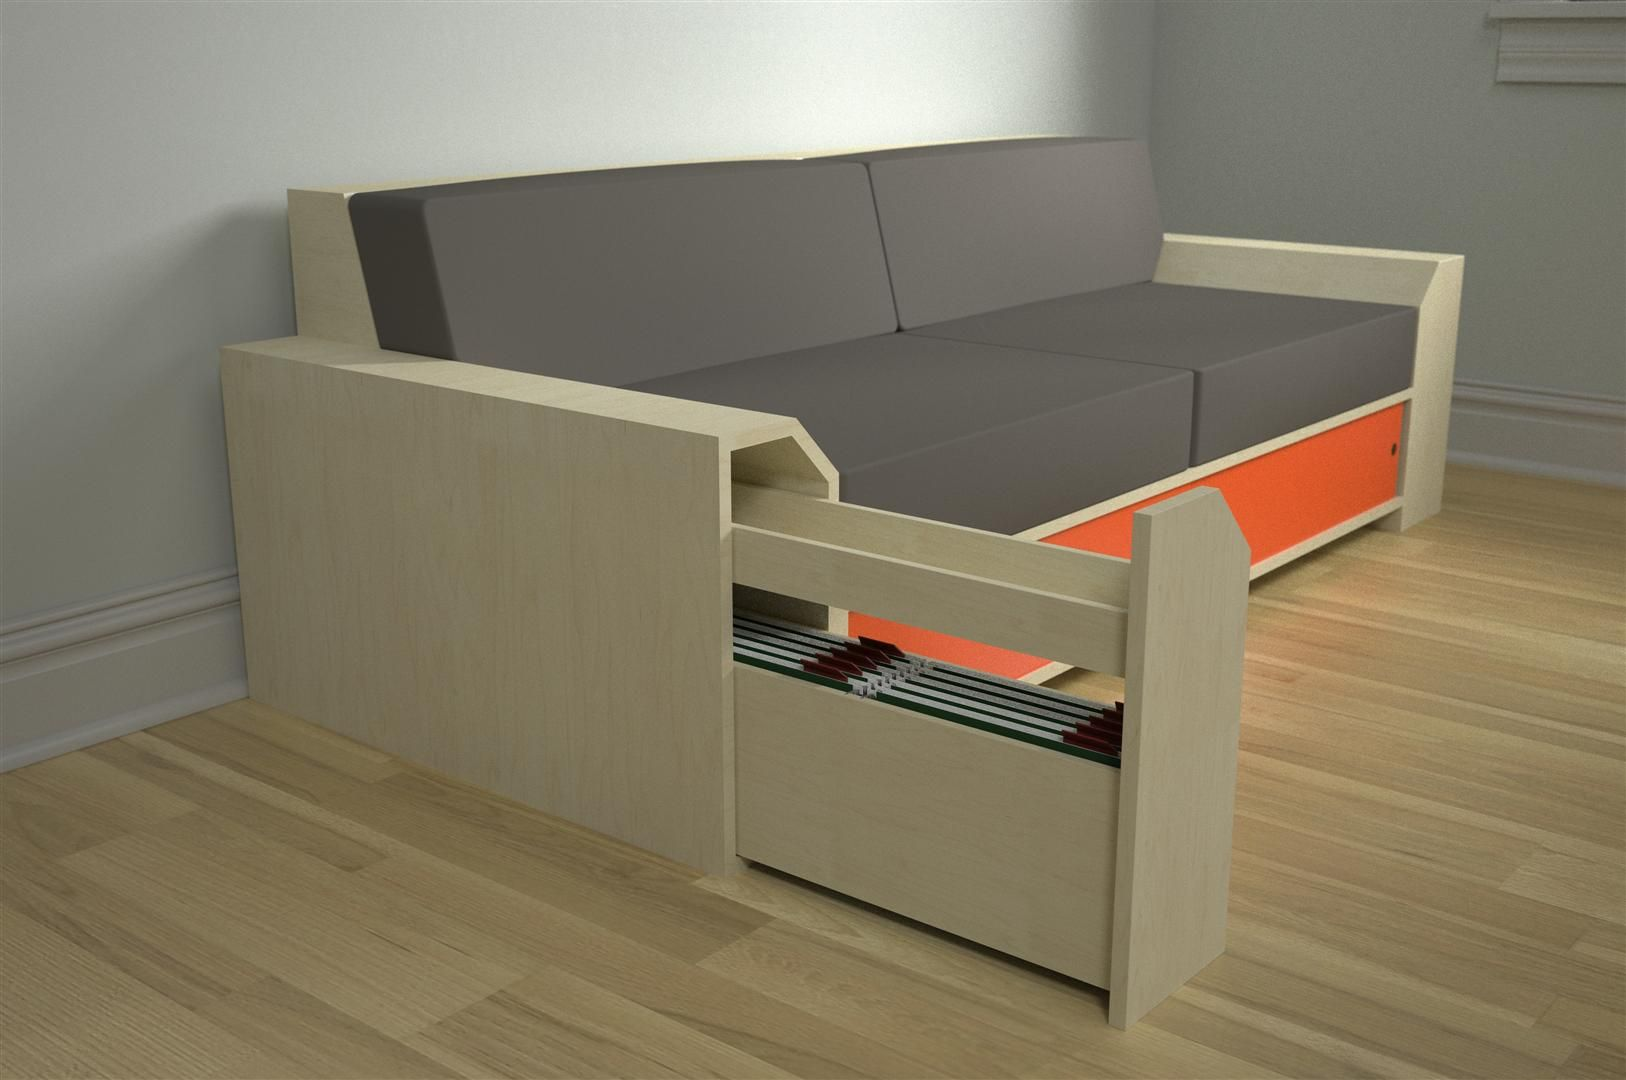 Rangement Modulaire Salon Modular Storage Seating Concept I 39m Working On All Parts